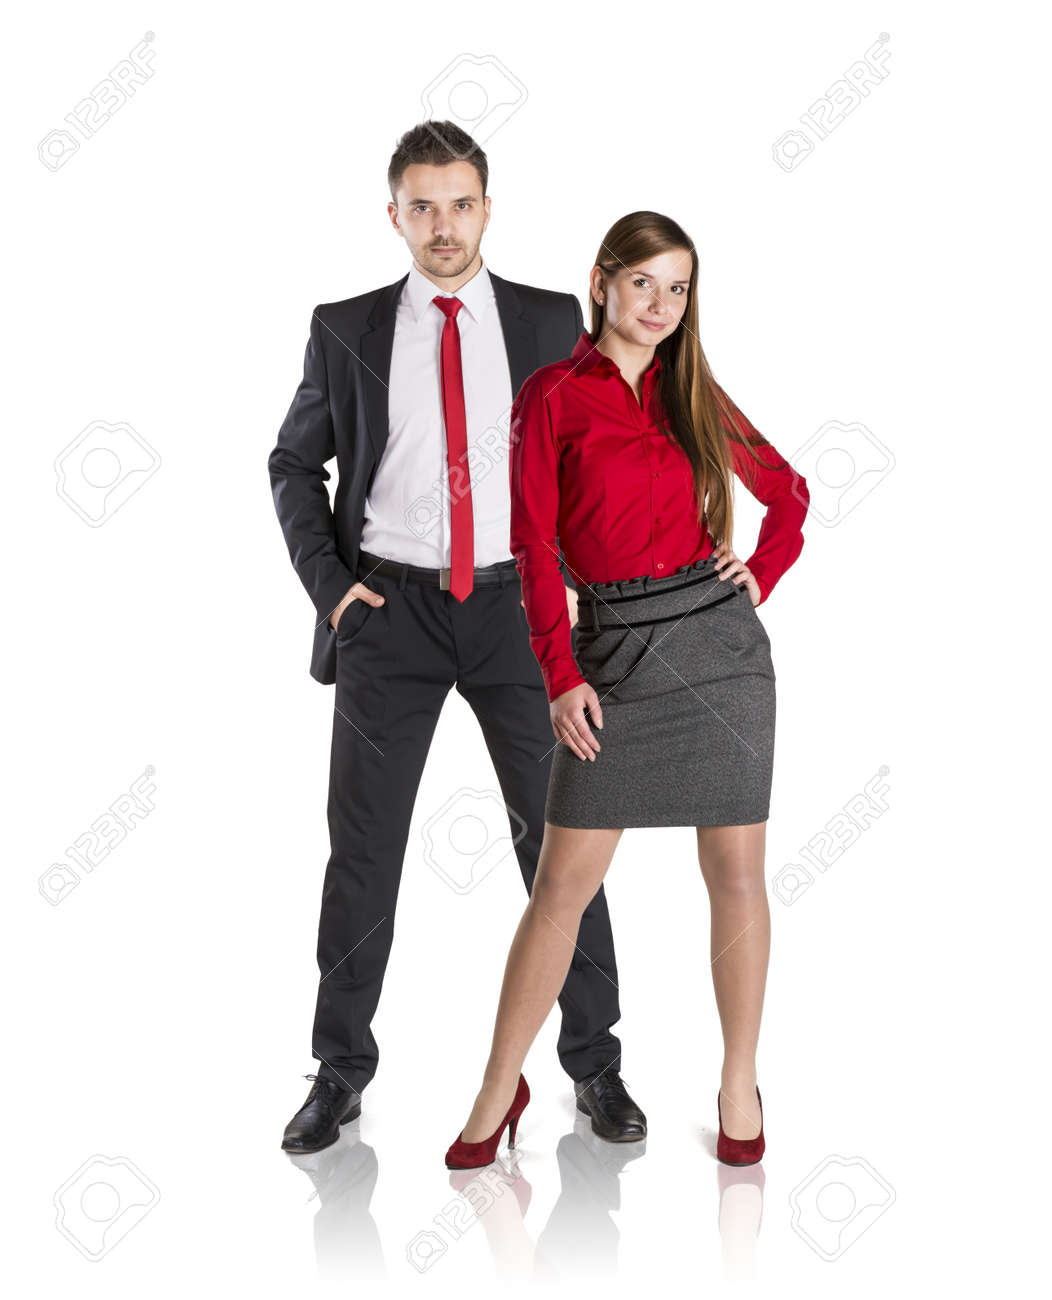 Successful business couple is standing on isolated background. Stock Photo - 17593766